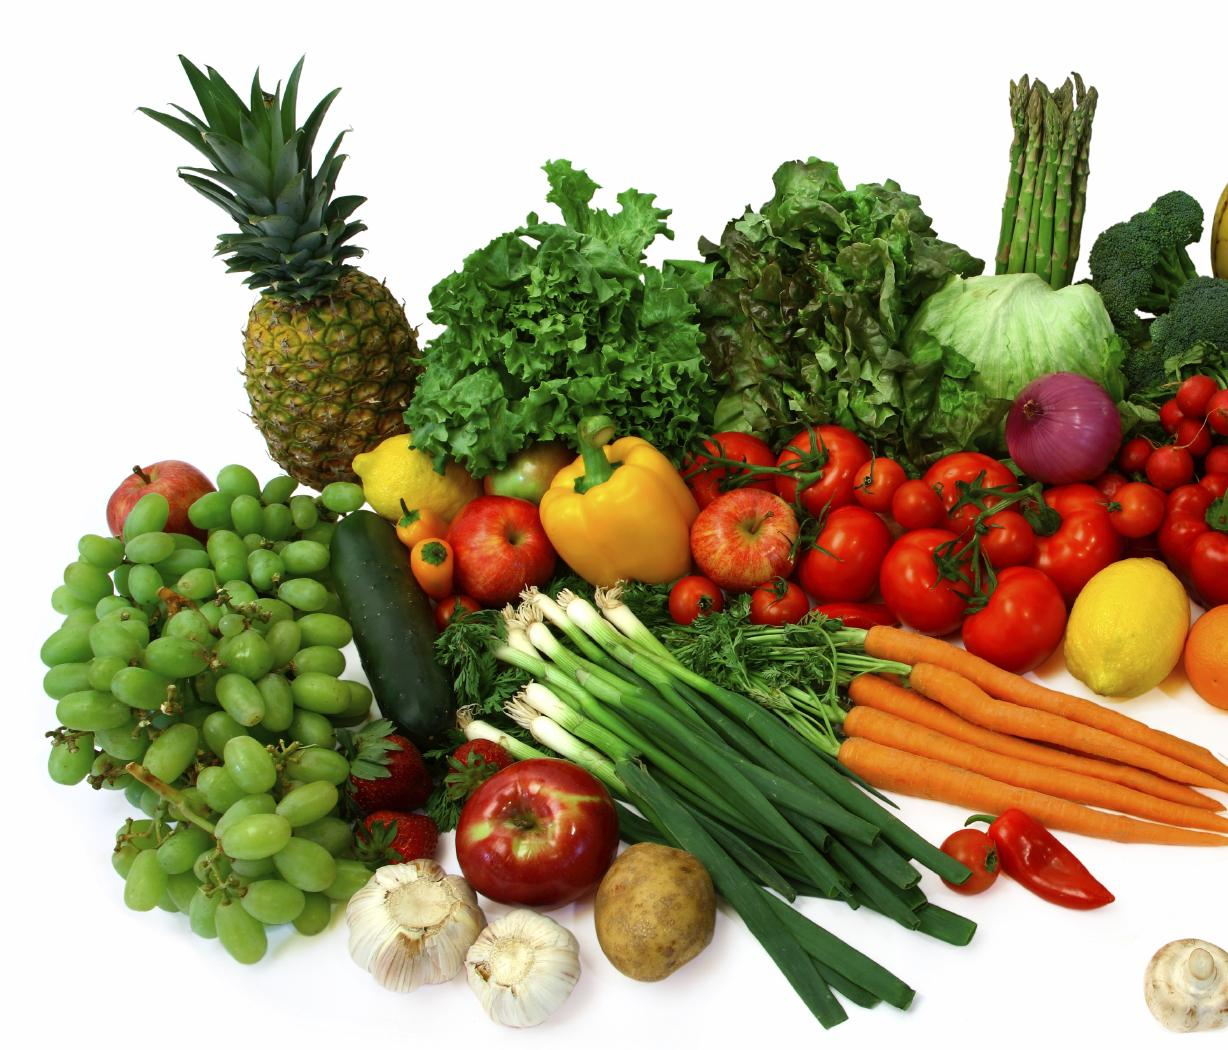 A healthy diet plan for coronary heart disease 10th